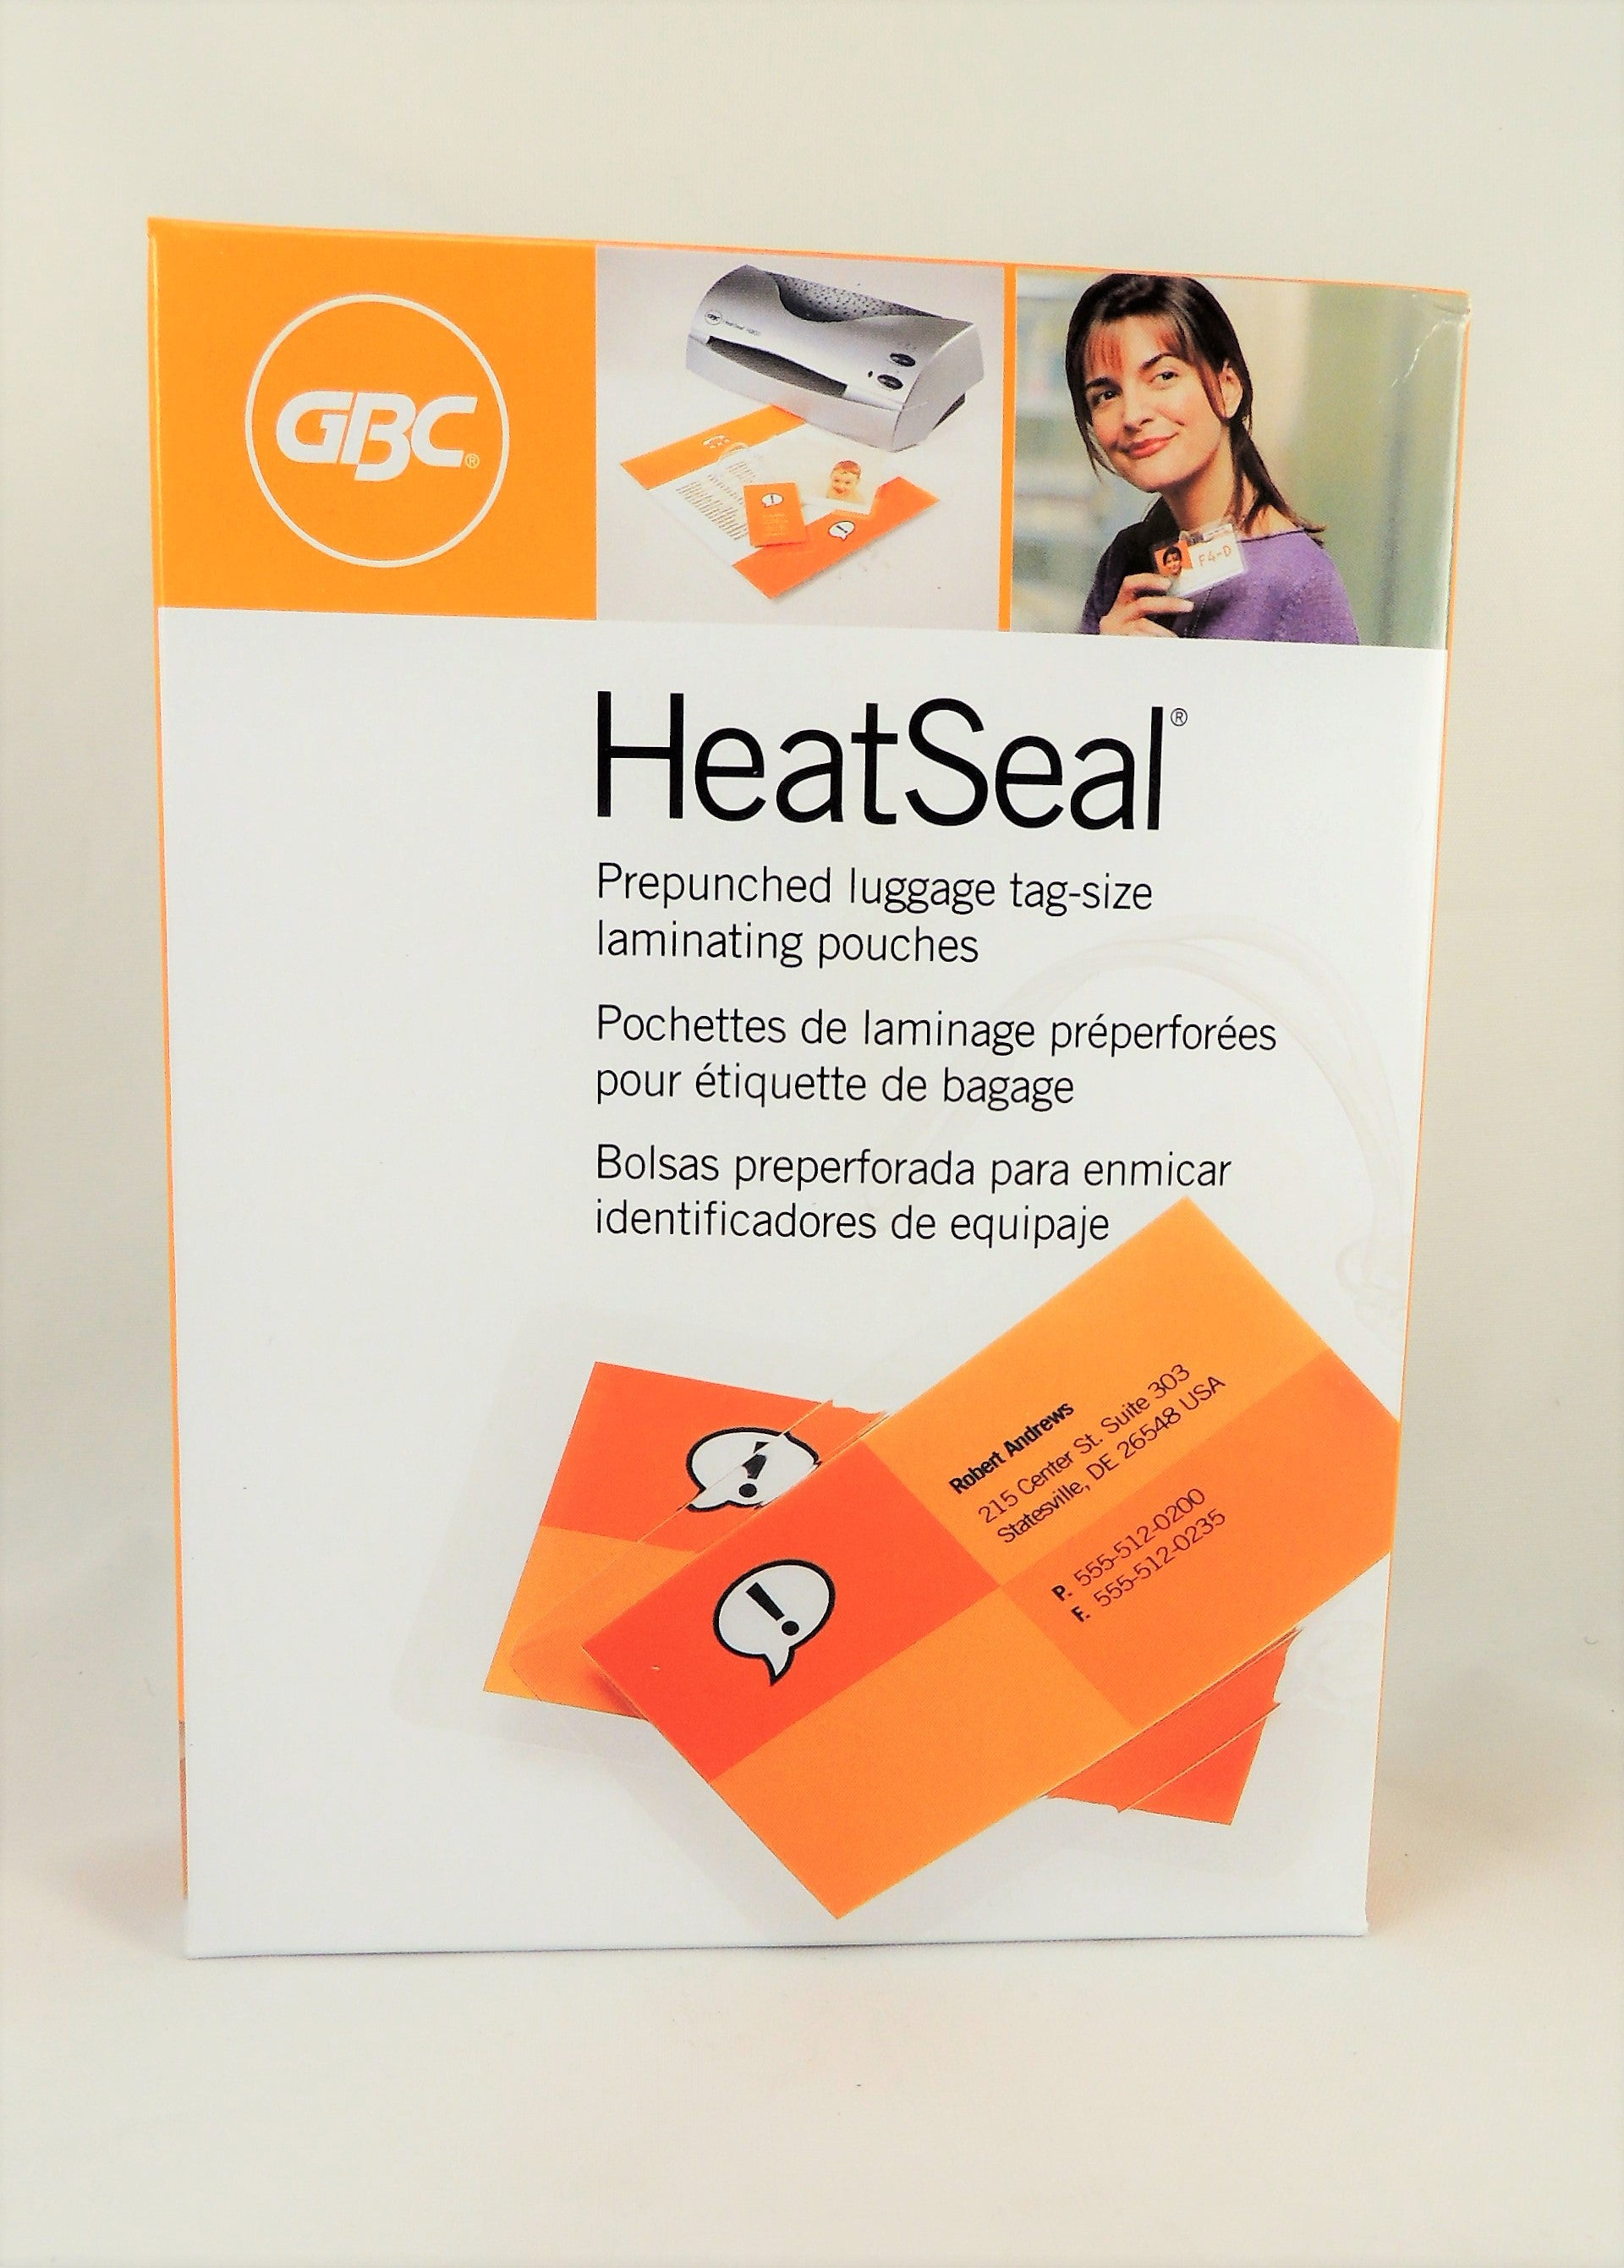 GBC heatseal 5 mil Prepunched Luggage Tag-Size 50 Packs